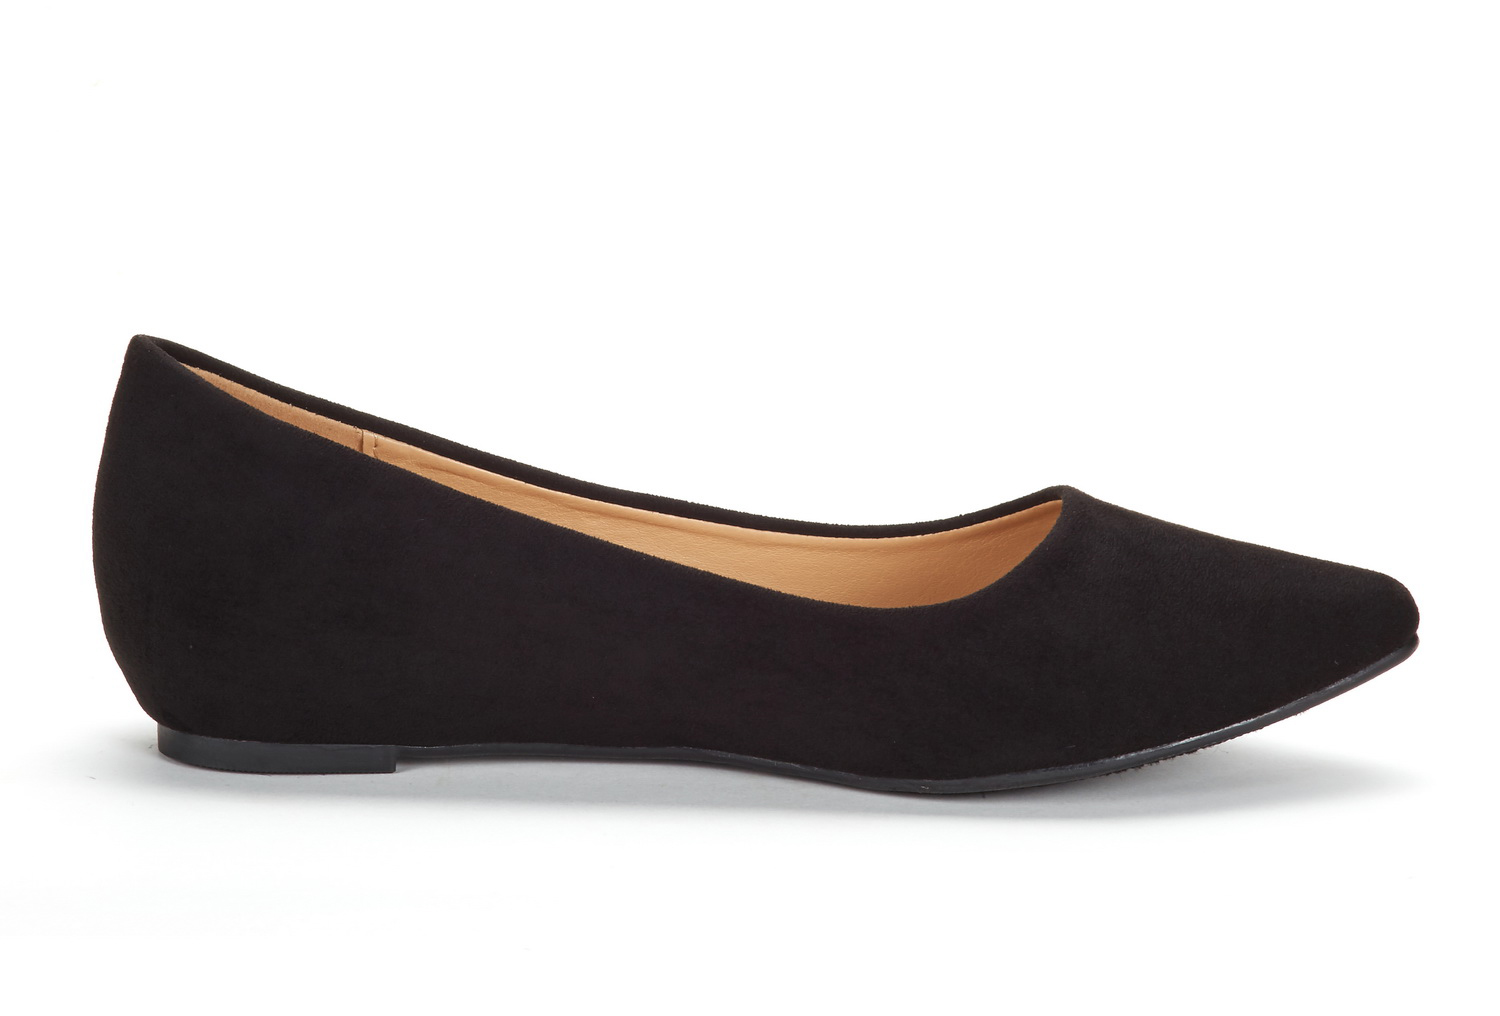 DREAM-PAIRS-Women-Low-Wedge-Flats-Ladies-Pointed-Toe-Slip-On-Comfort-Flat-Shoes thumbnail 64